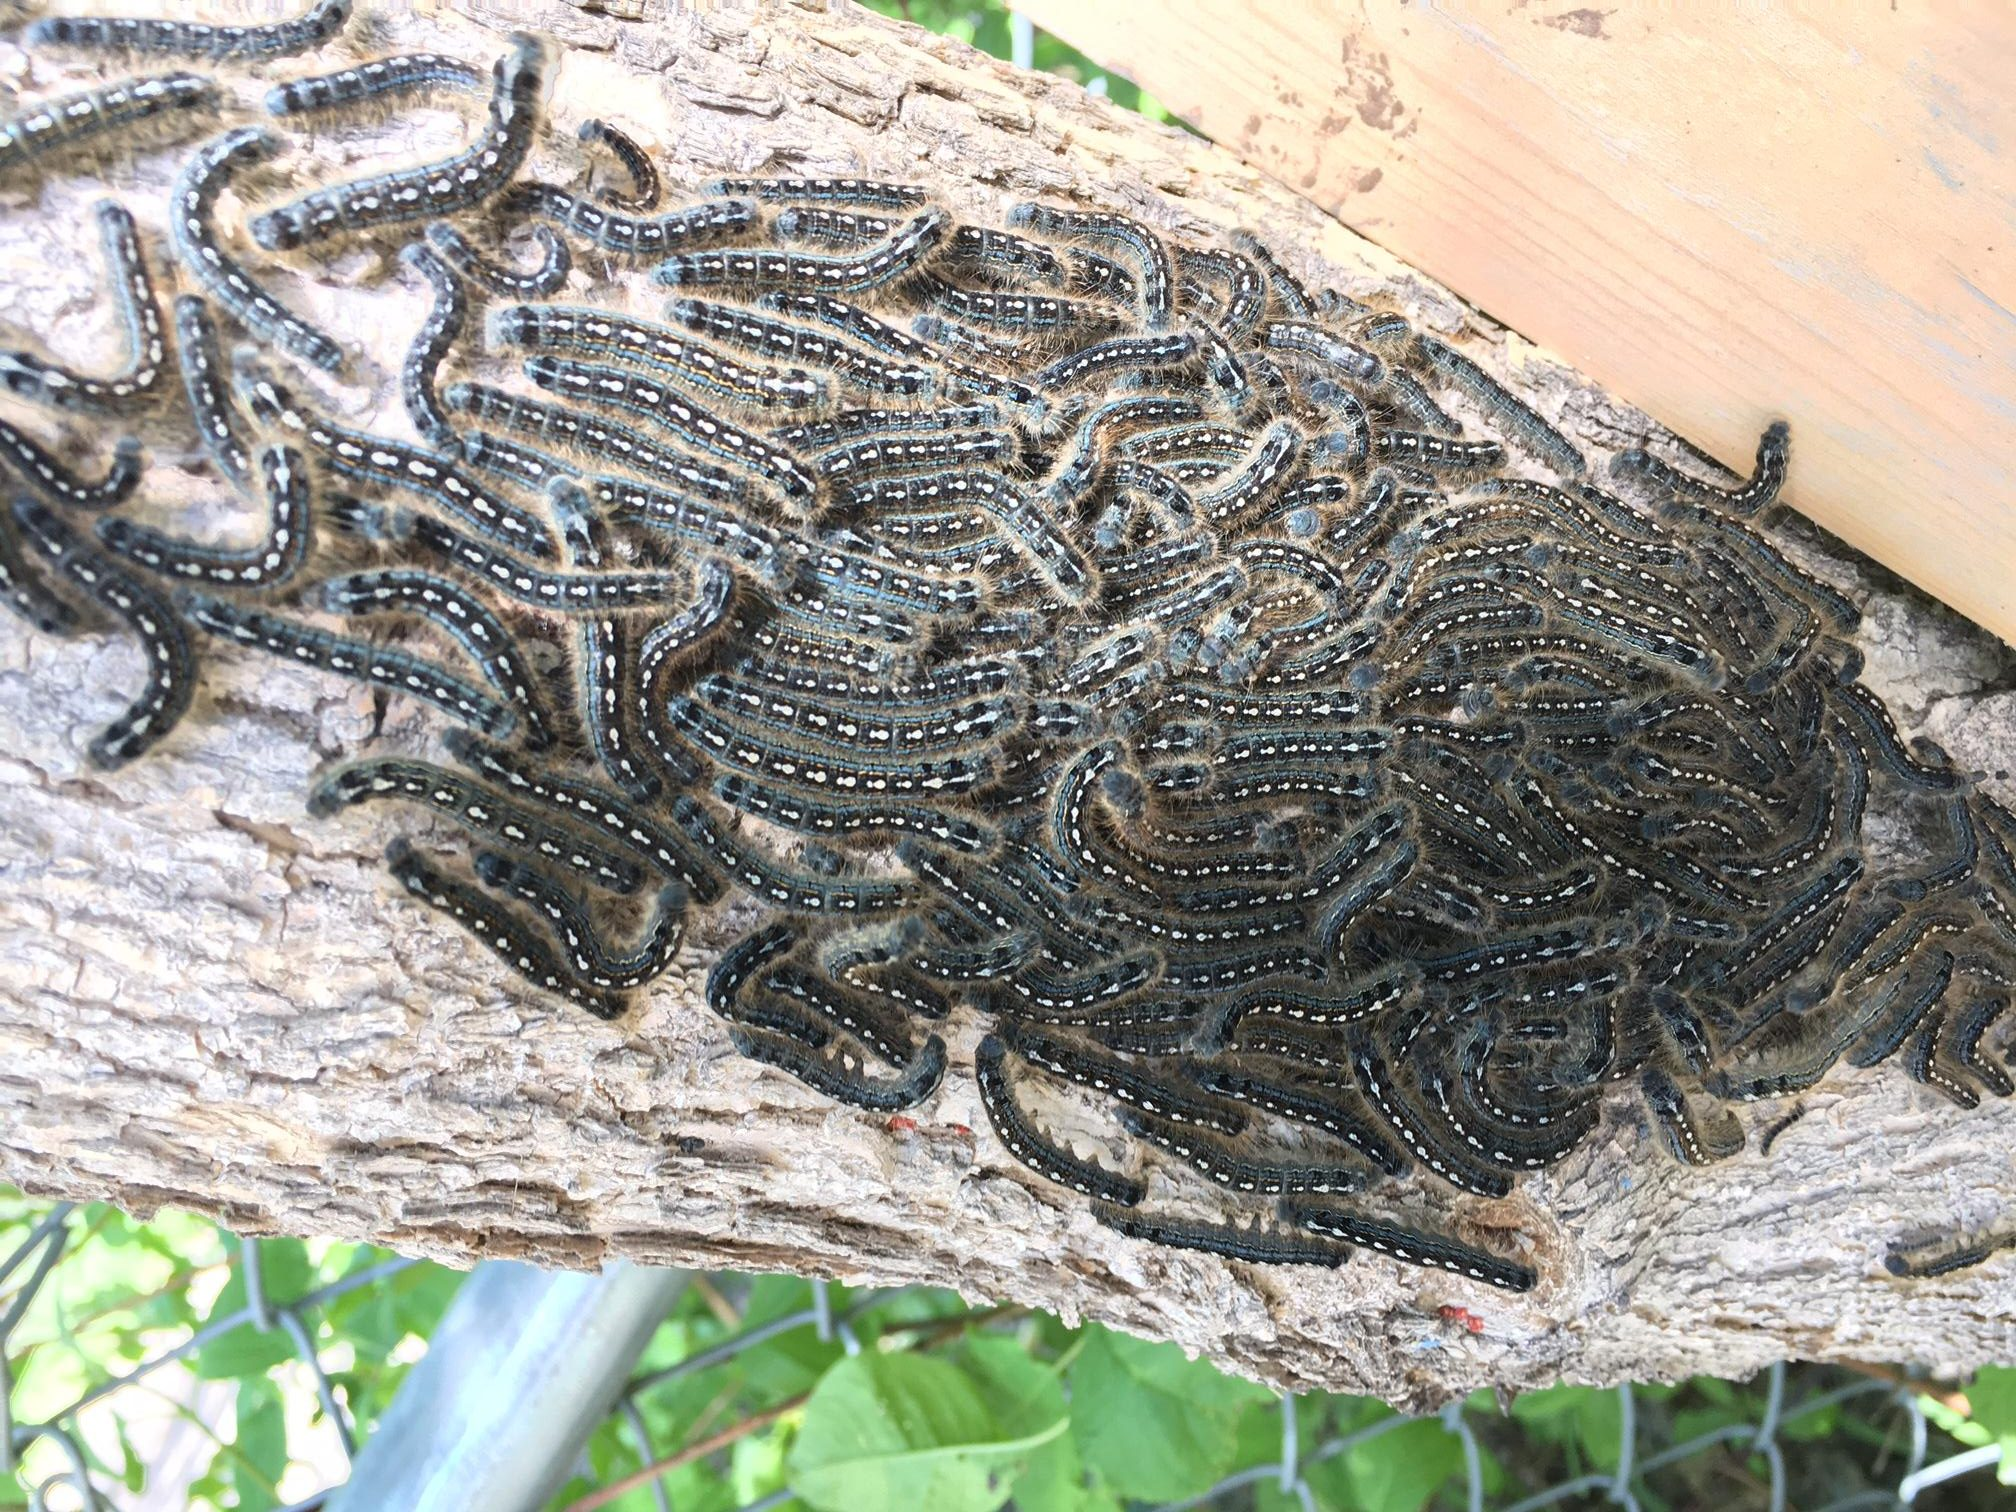 Ick factor: Tent caterpillars invade Sask.